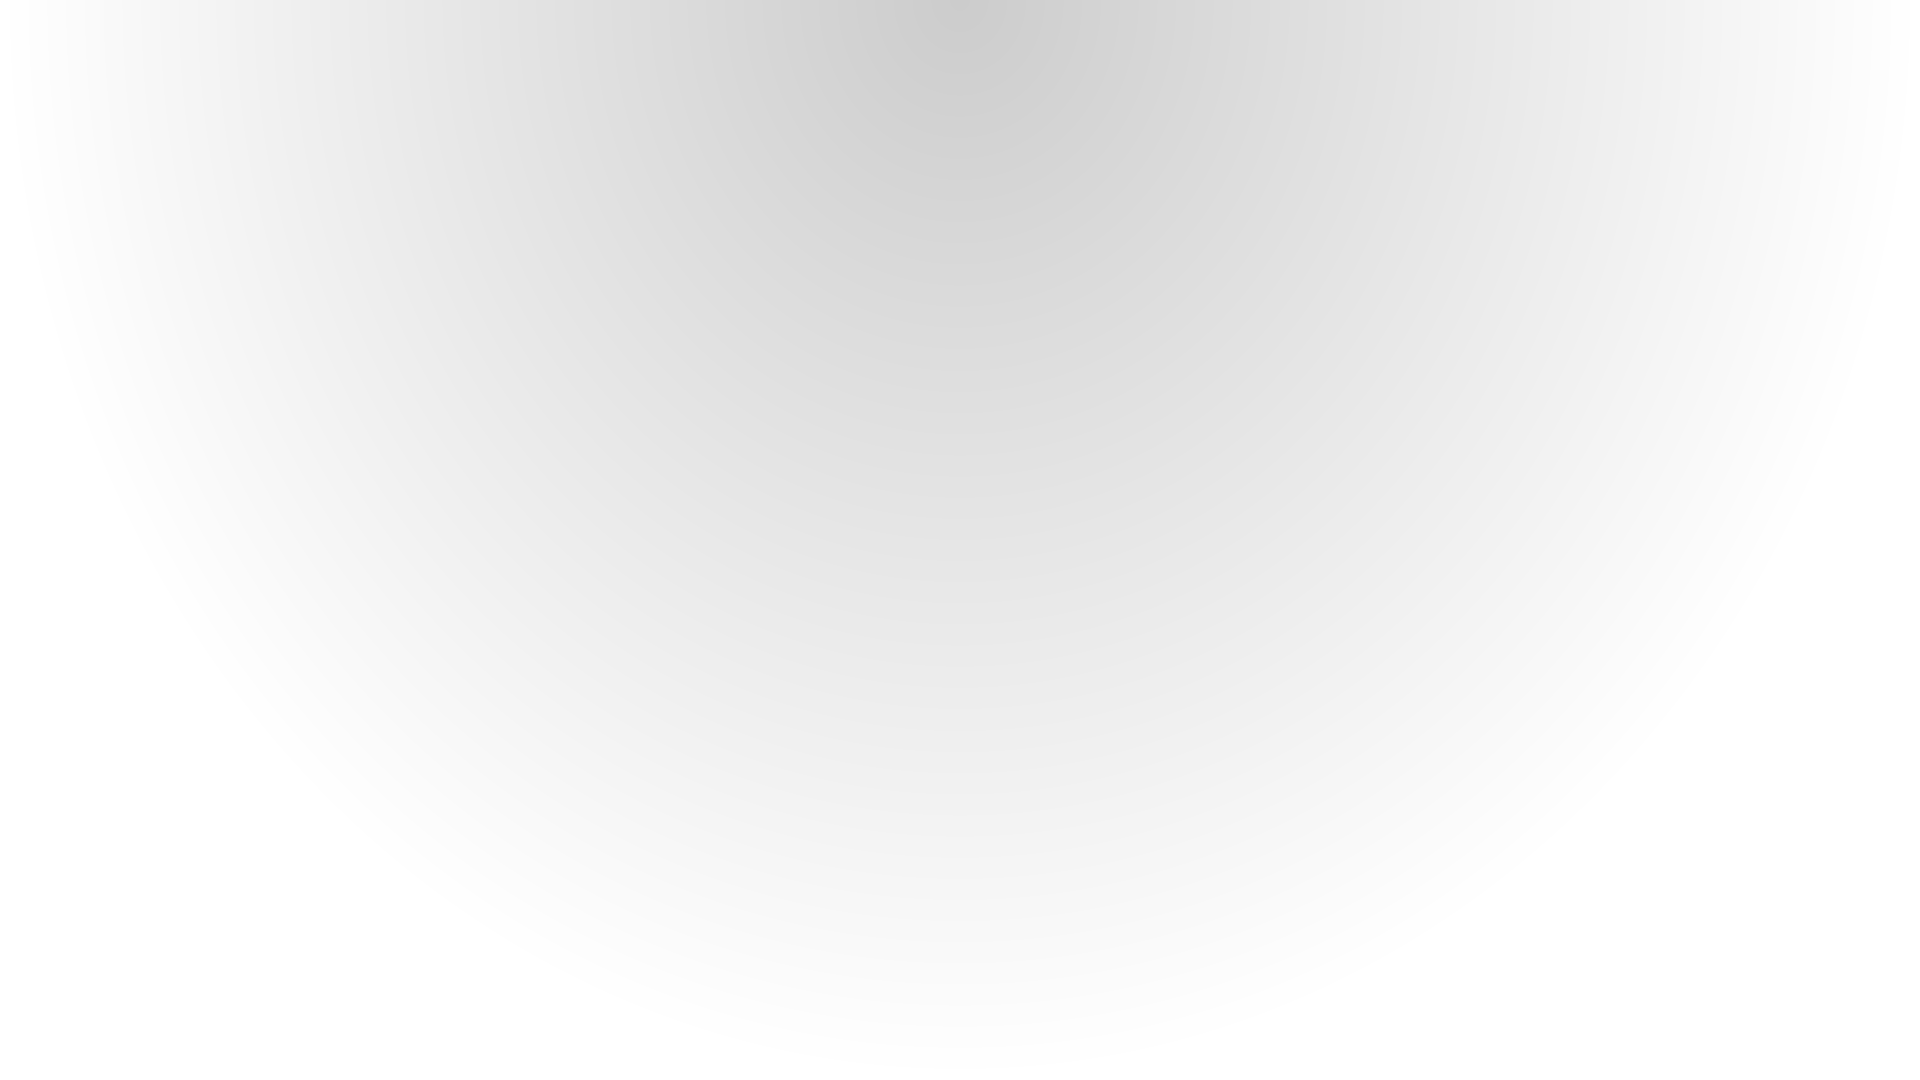 radial-gradient-black-top-20